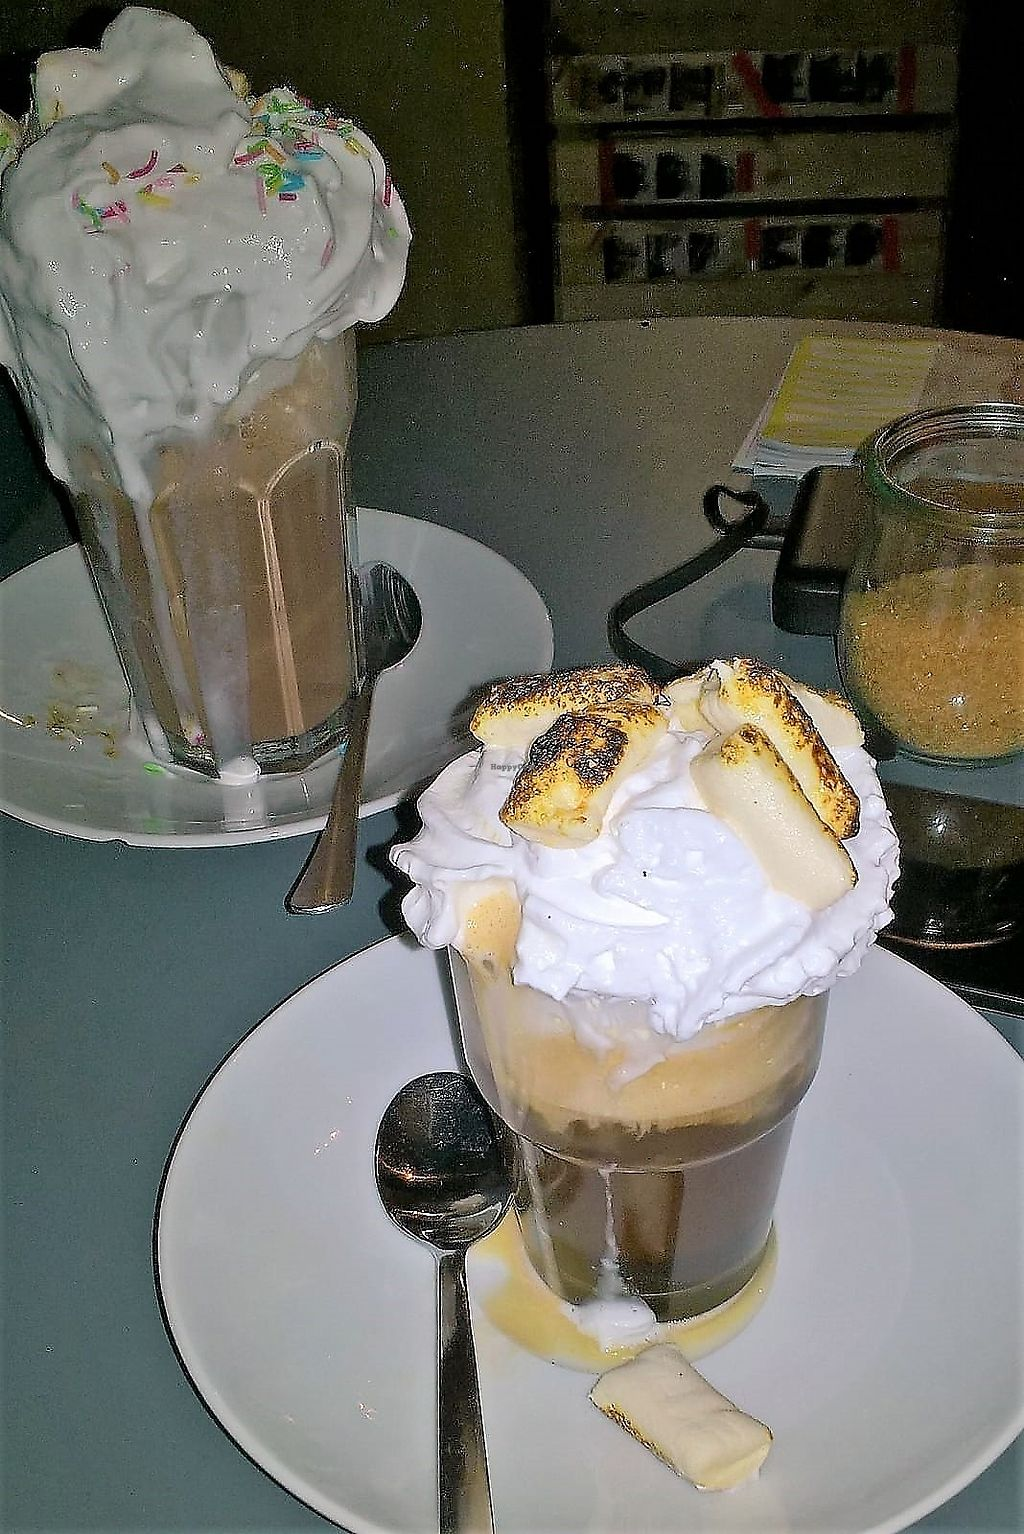 "Photo of Chaostheorie  by <a href=""/members/profile/Ofez"">Ofez</a> <br/>Chocolat chaud + irish coffee <br/> February 25, 2018  - <a href='/contact/abuse/image/40825/363555'>Report</a>"